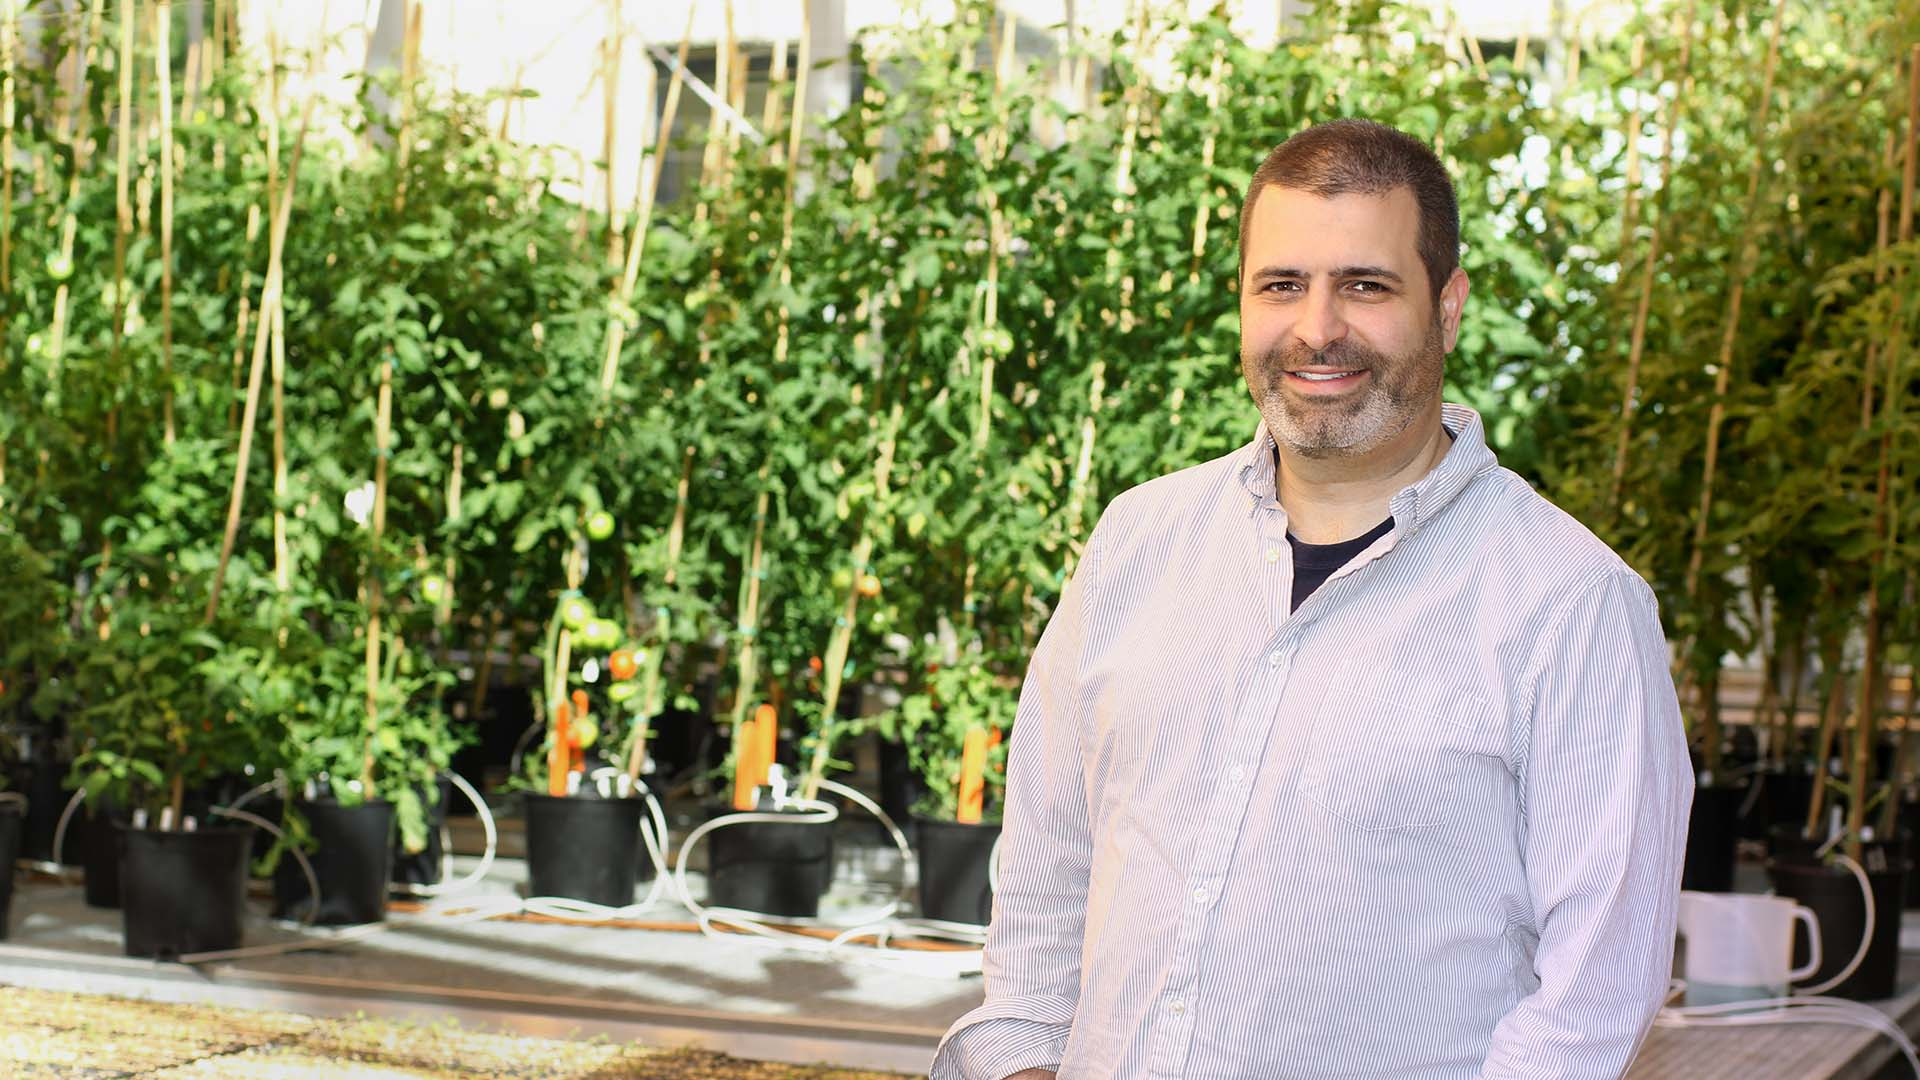 photo of Zach Lippman standing in front of tomato plants